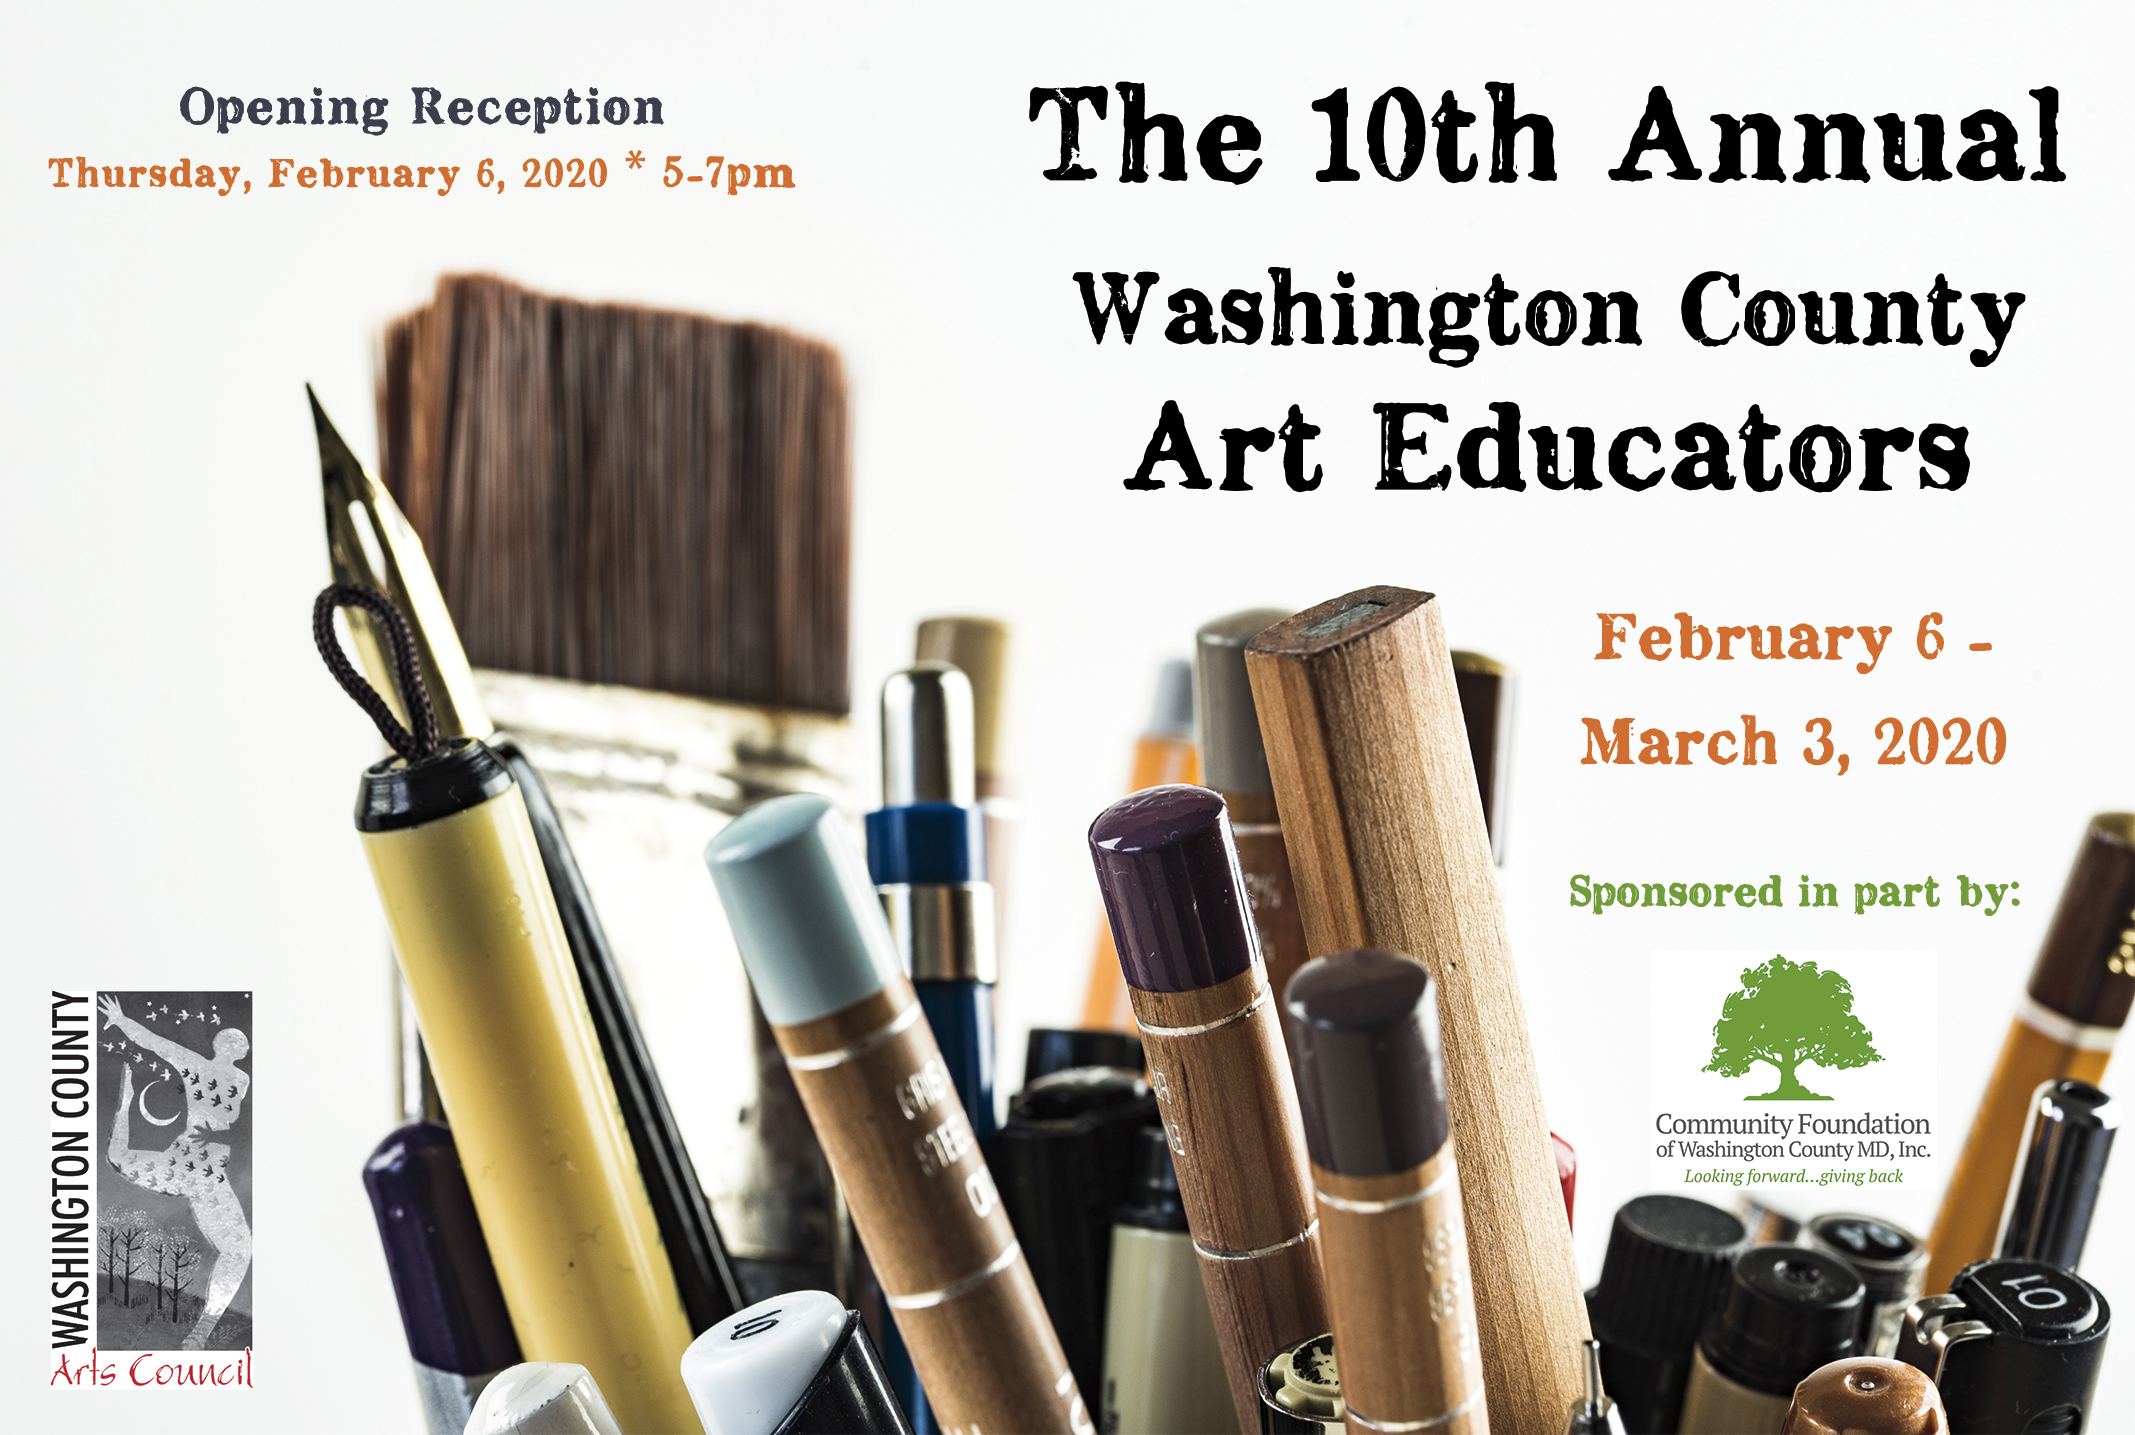 10th Annual Washington County Art Educators